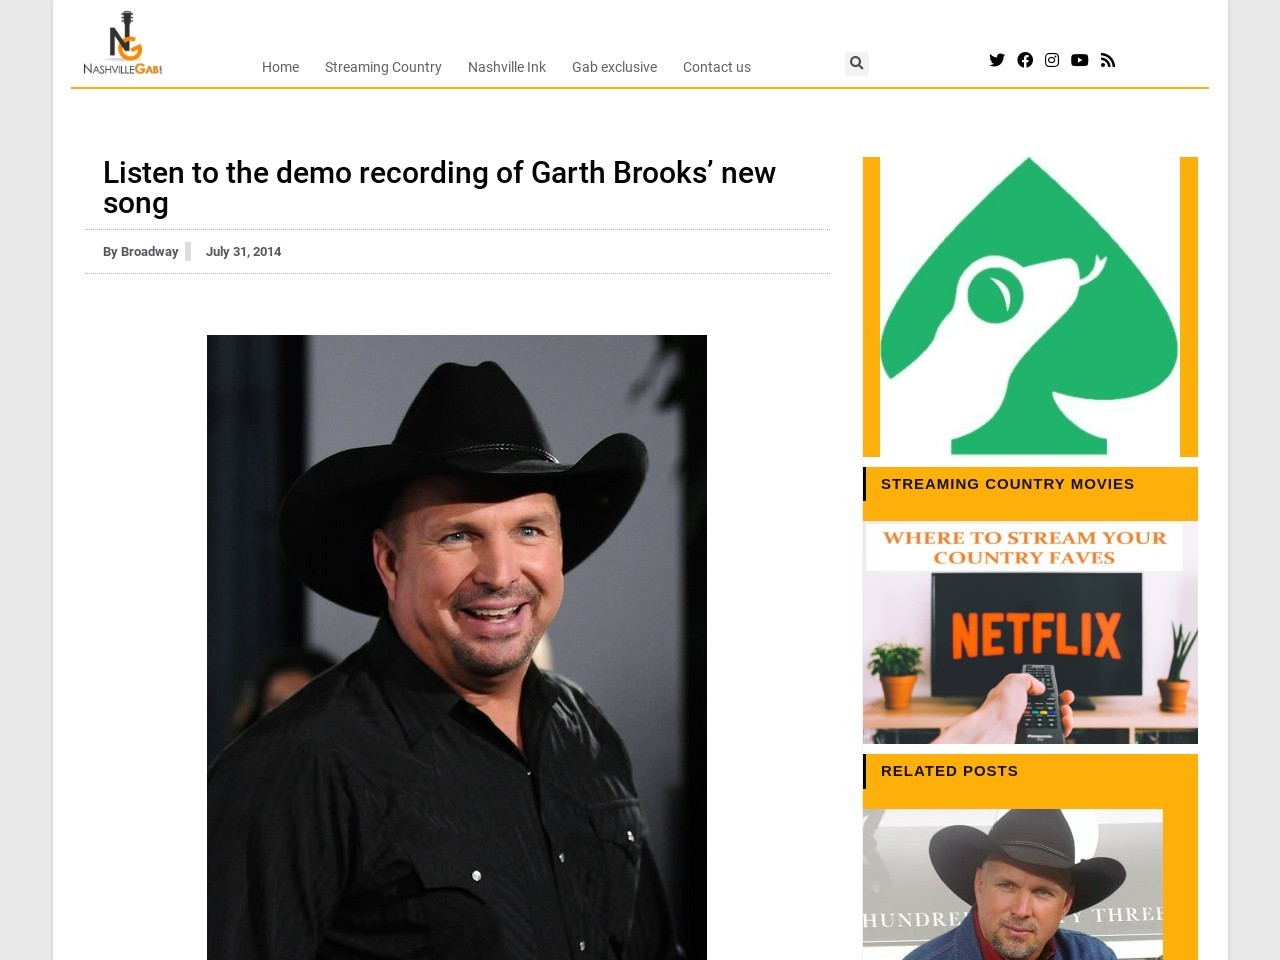 Listen to the demo recording of Garth Brooks' new song …